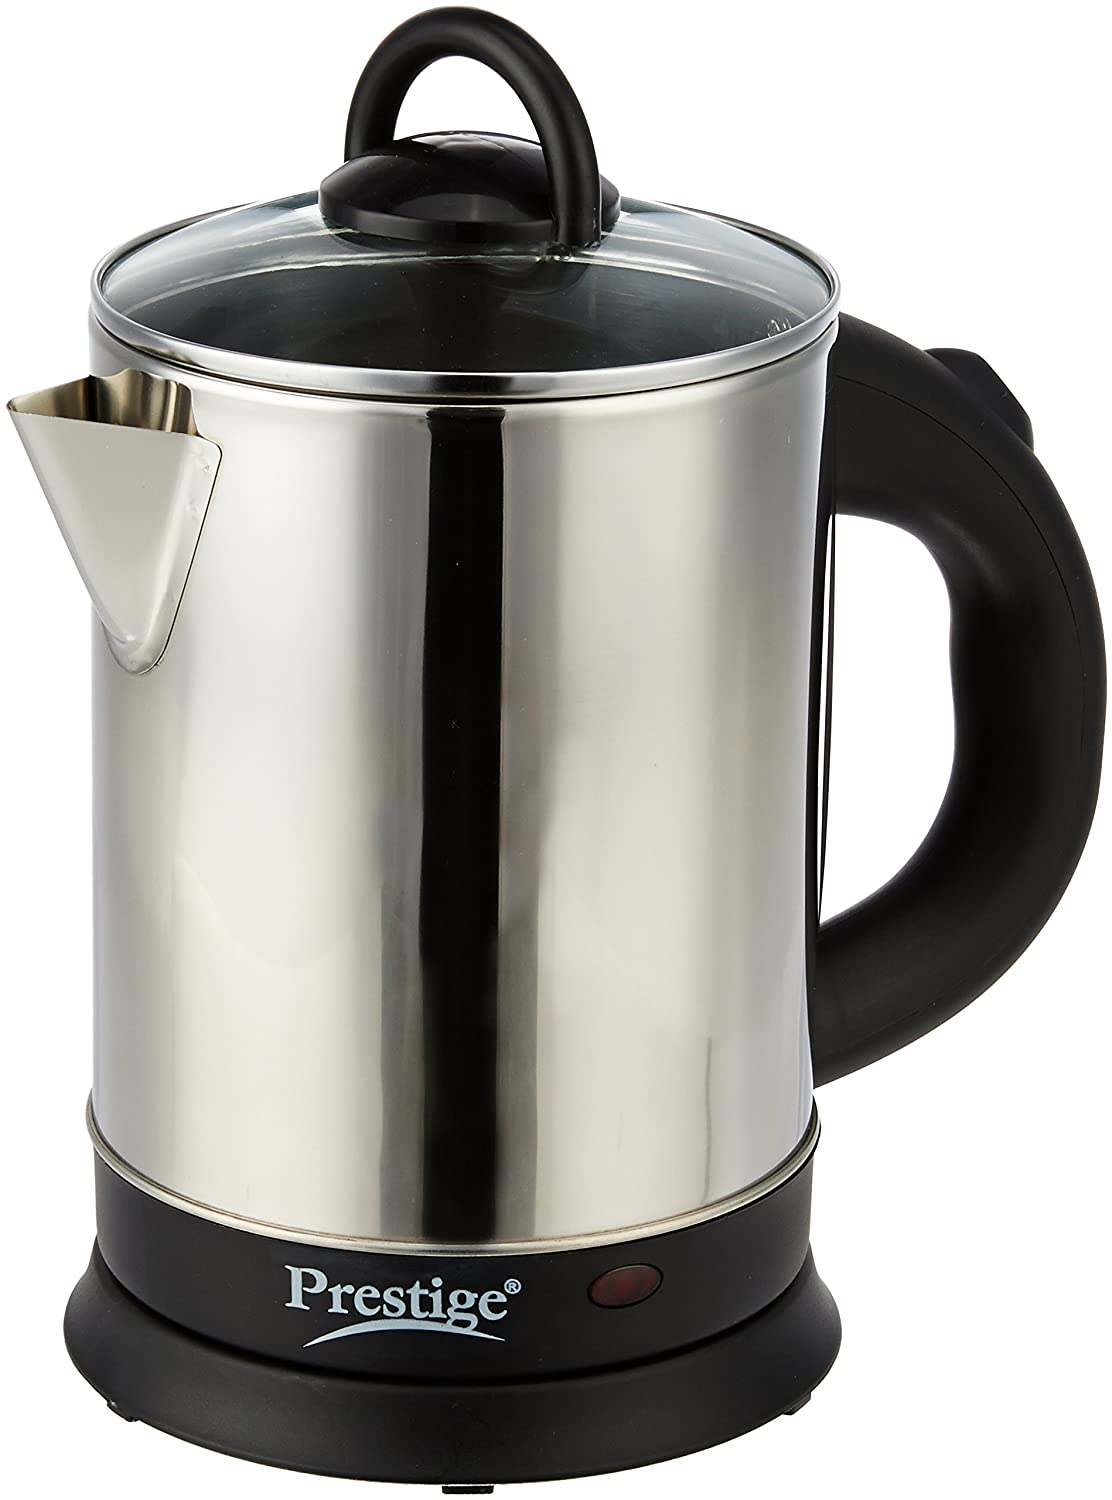 Prestige PKGSS 1.7L 1500W Electric Kettle